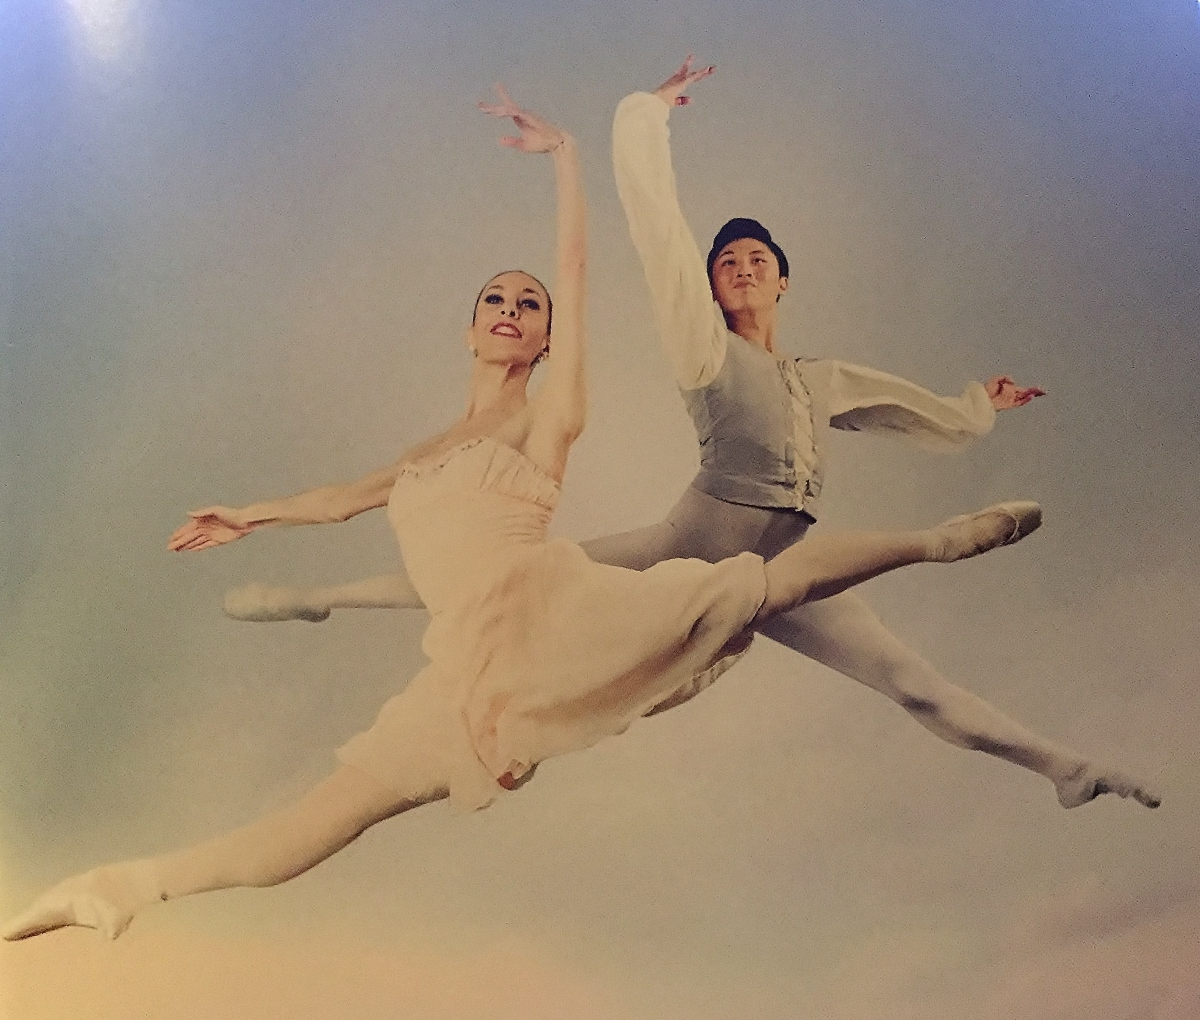 Texas Ballet Theater is 'On Pointe' with ClassicCombination